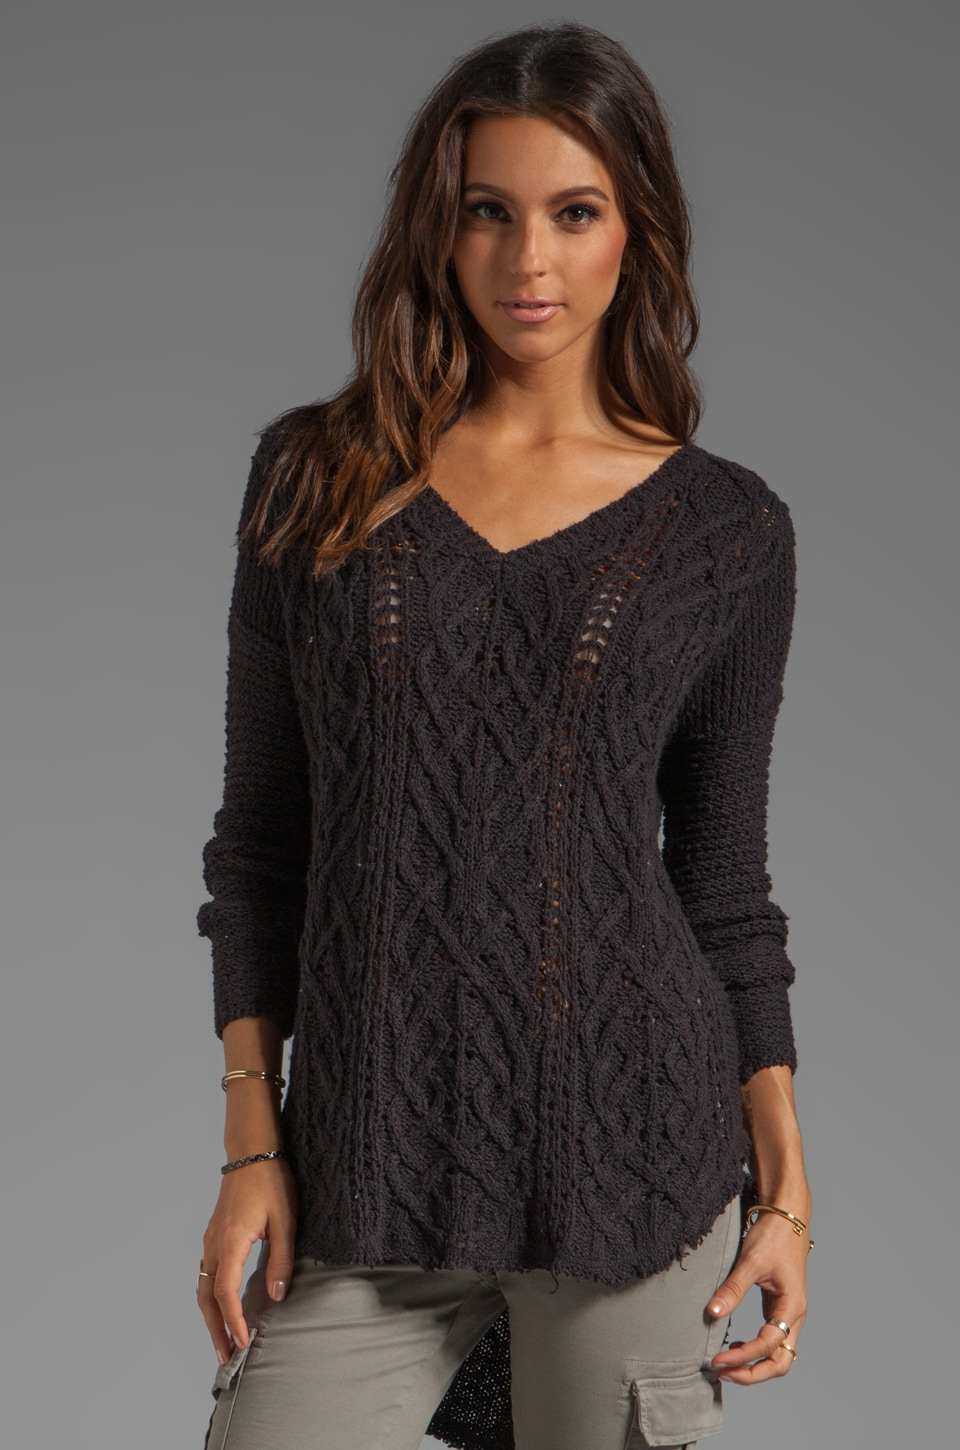 Free People Cross My Heart Sweater in Black